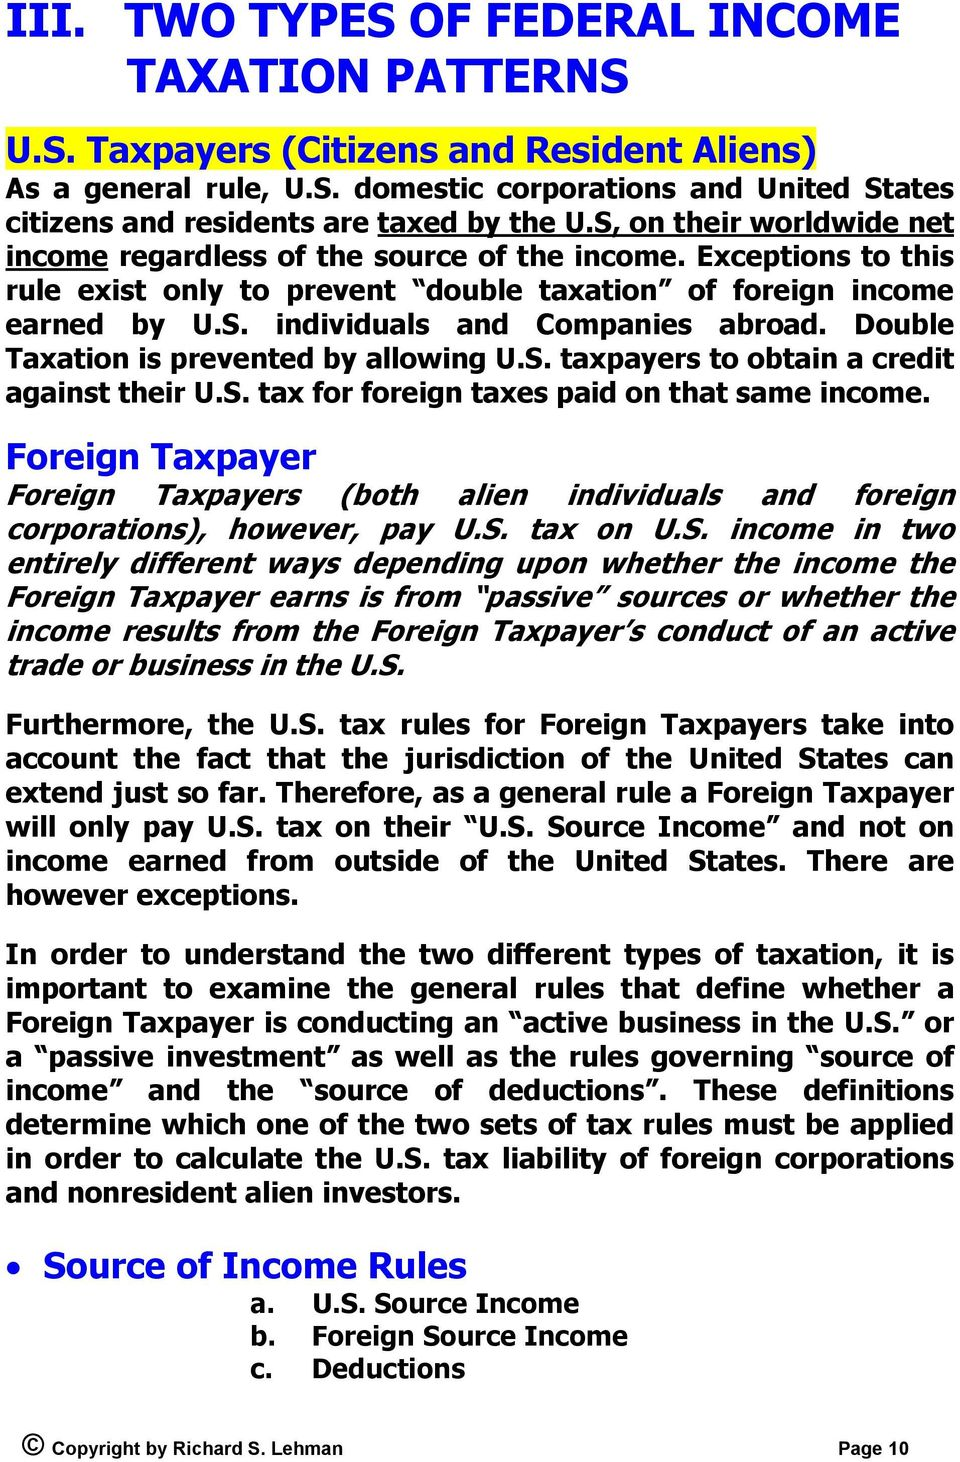 Double Taxation is prevented by allowing U.S. taxpayers to obtain a credit against their U.S. tax for foreign taxes paid on that same income.